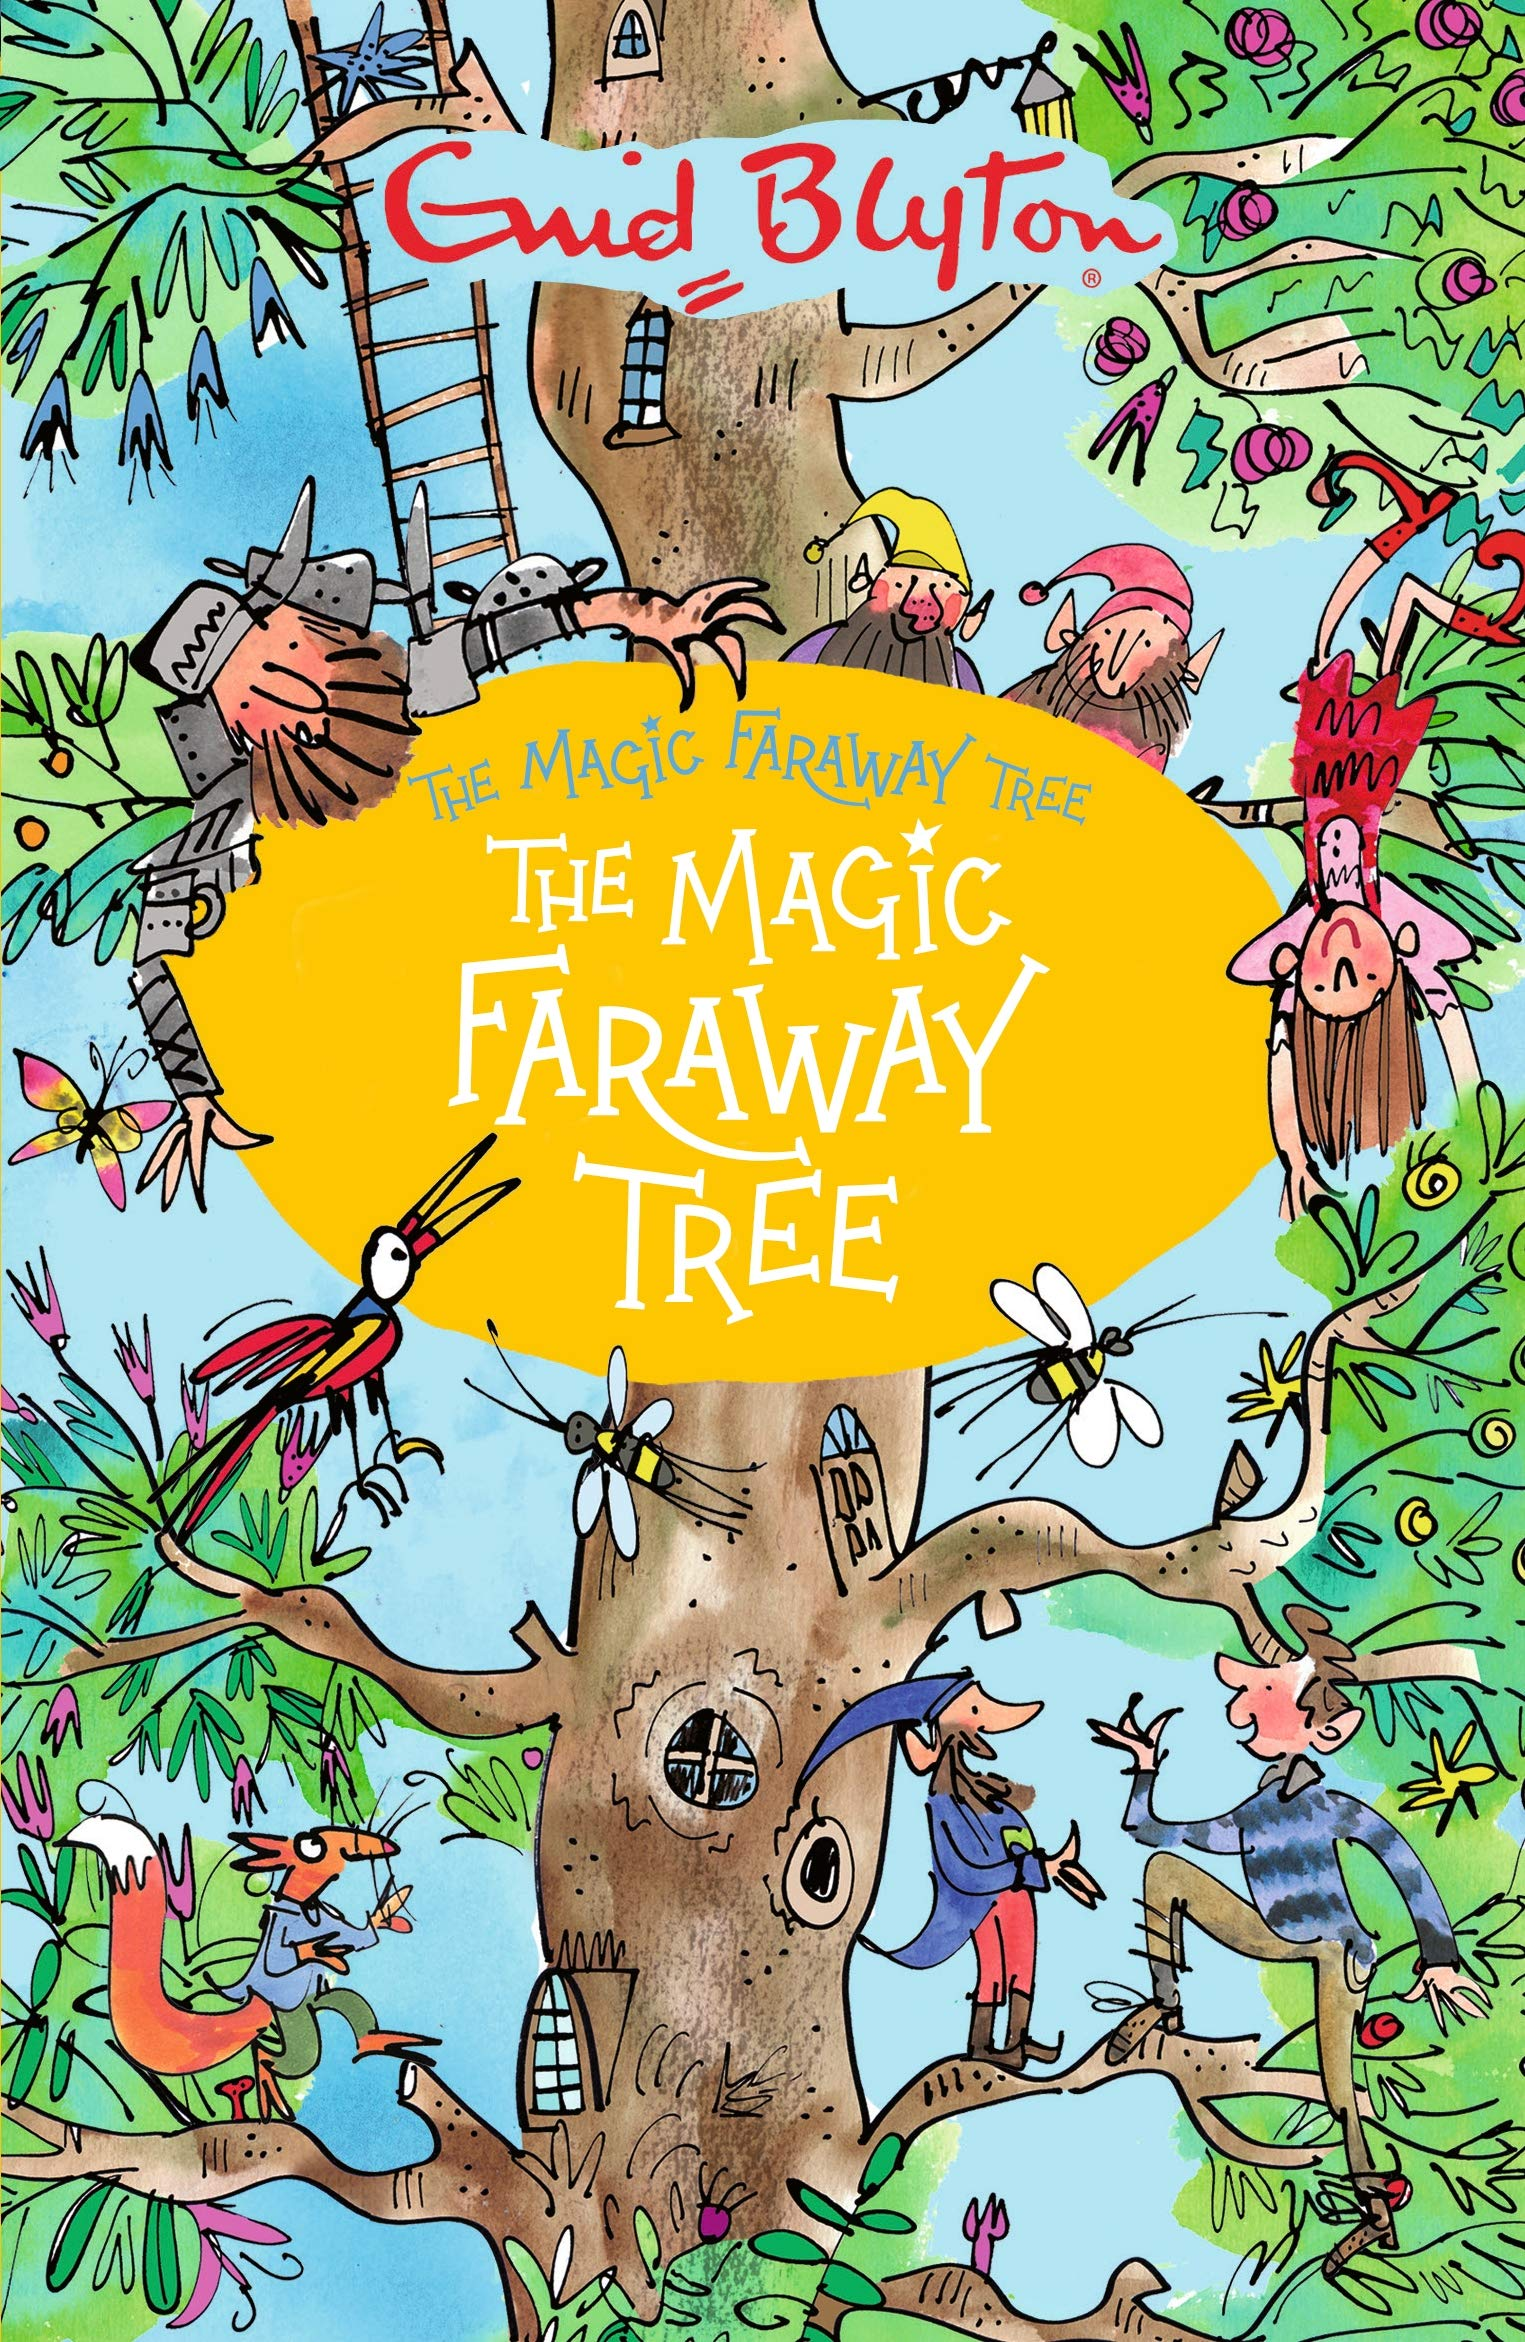 Buy The Magic Faraway Tree (The Magic Faraway Tree) Book Online at Low  Prices in India   The Magic Faraway Tree (The Magic Faraway Tree) Reviews &  Ratings - Amazon.in